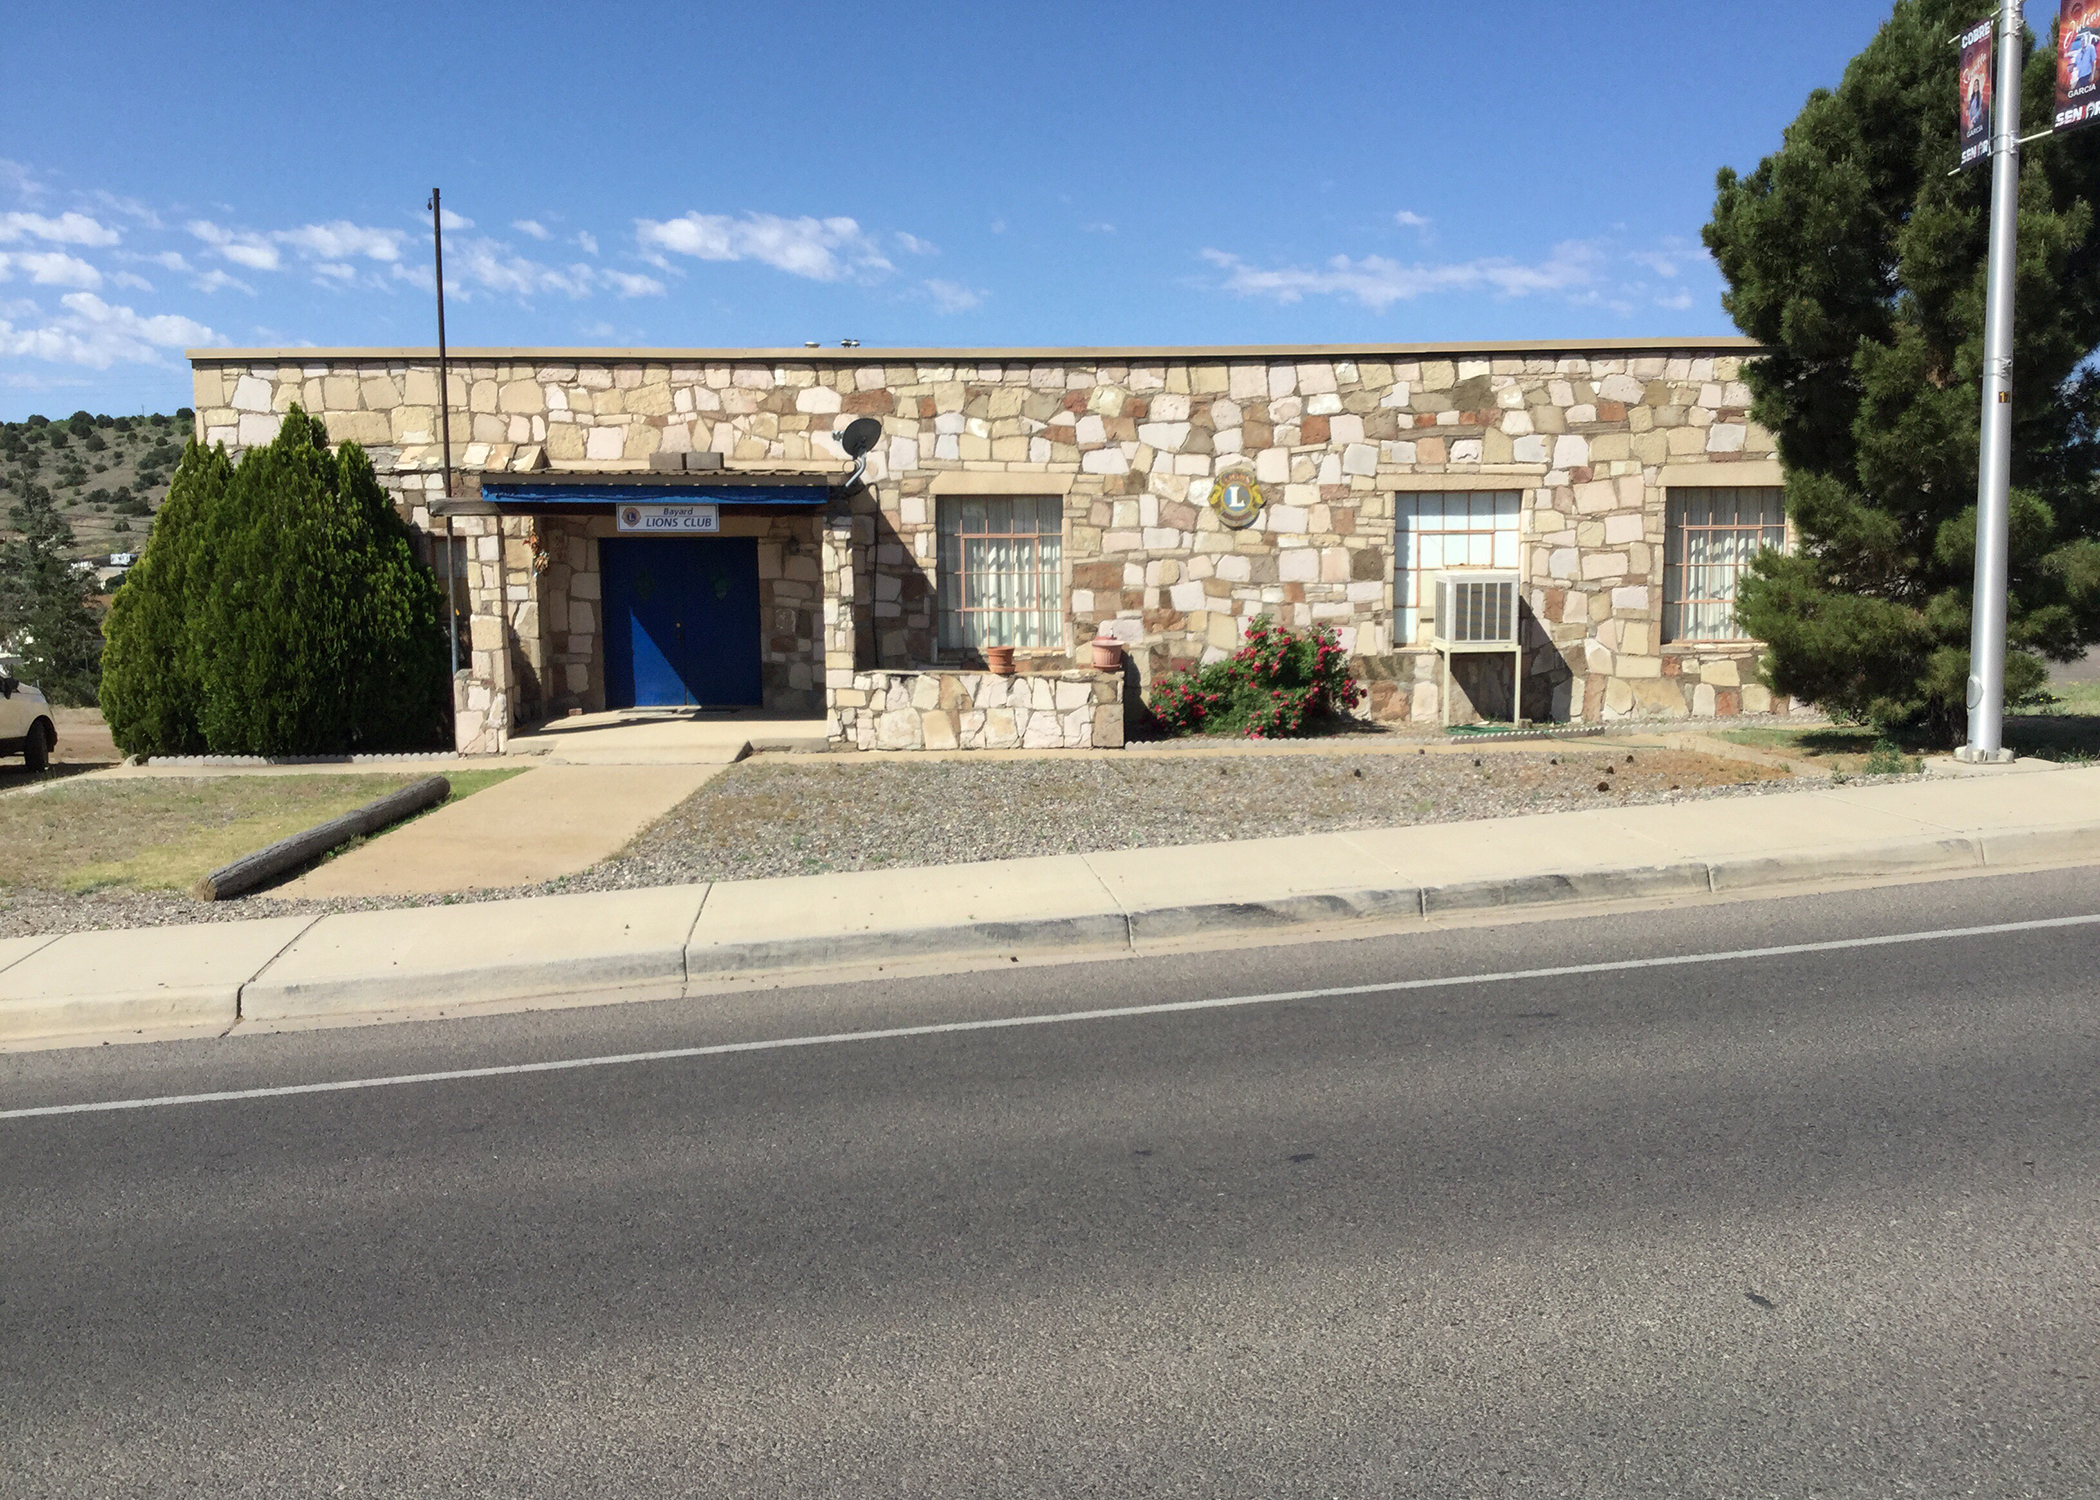 The Lions Club building in Bayard, New Mexico.